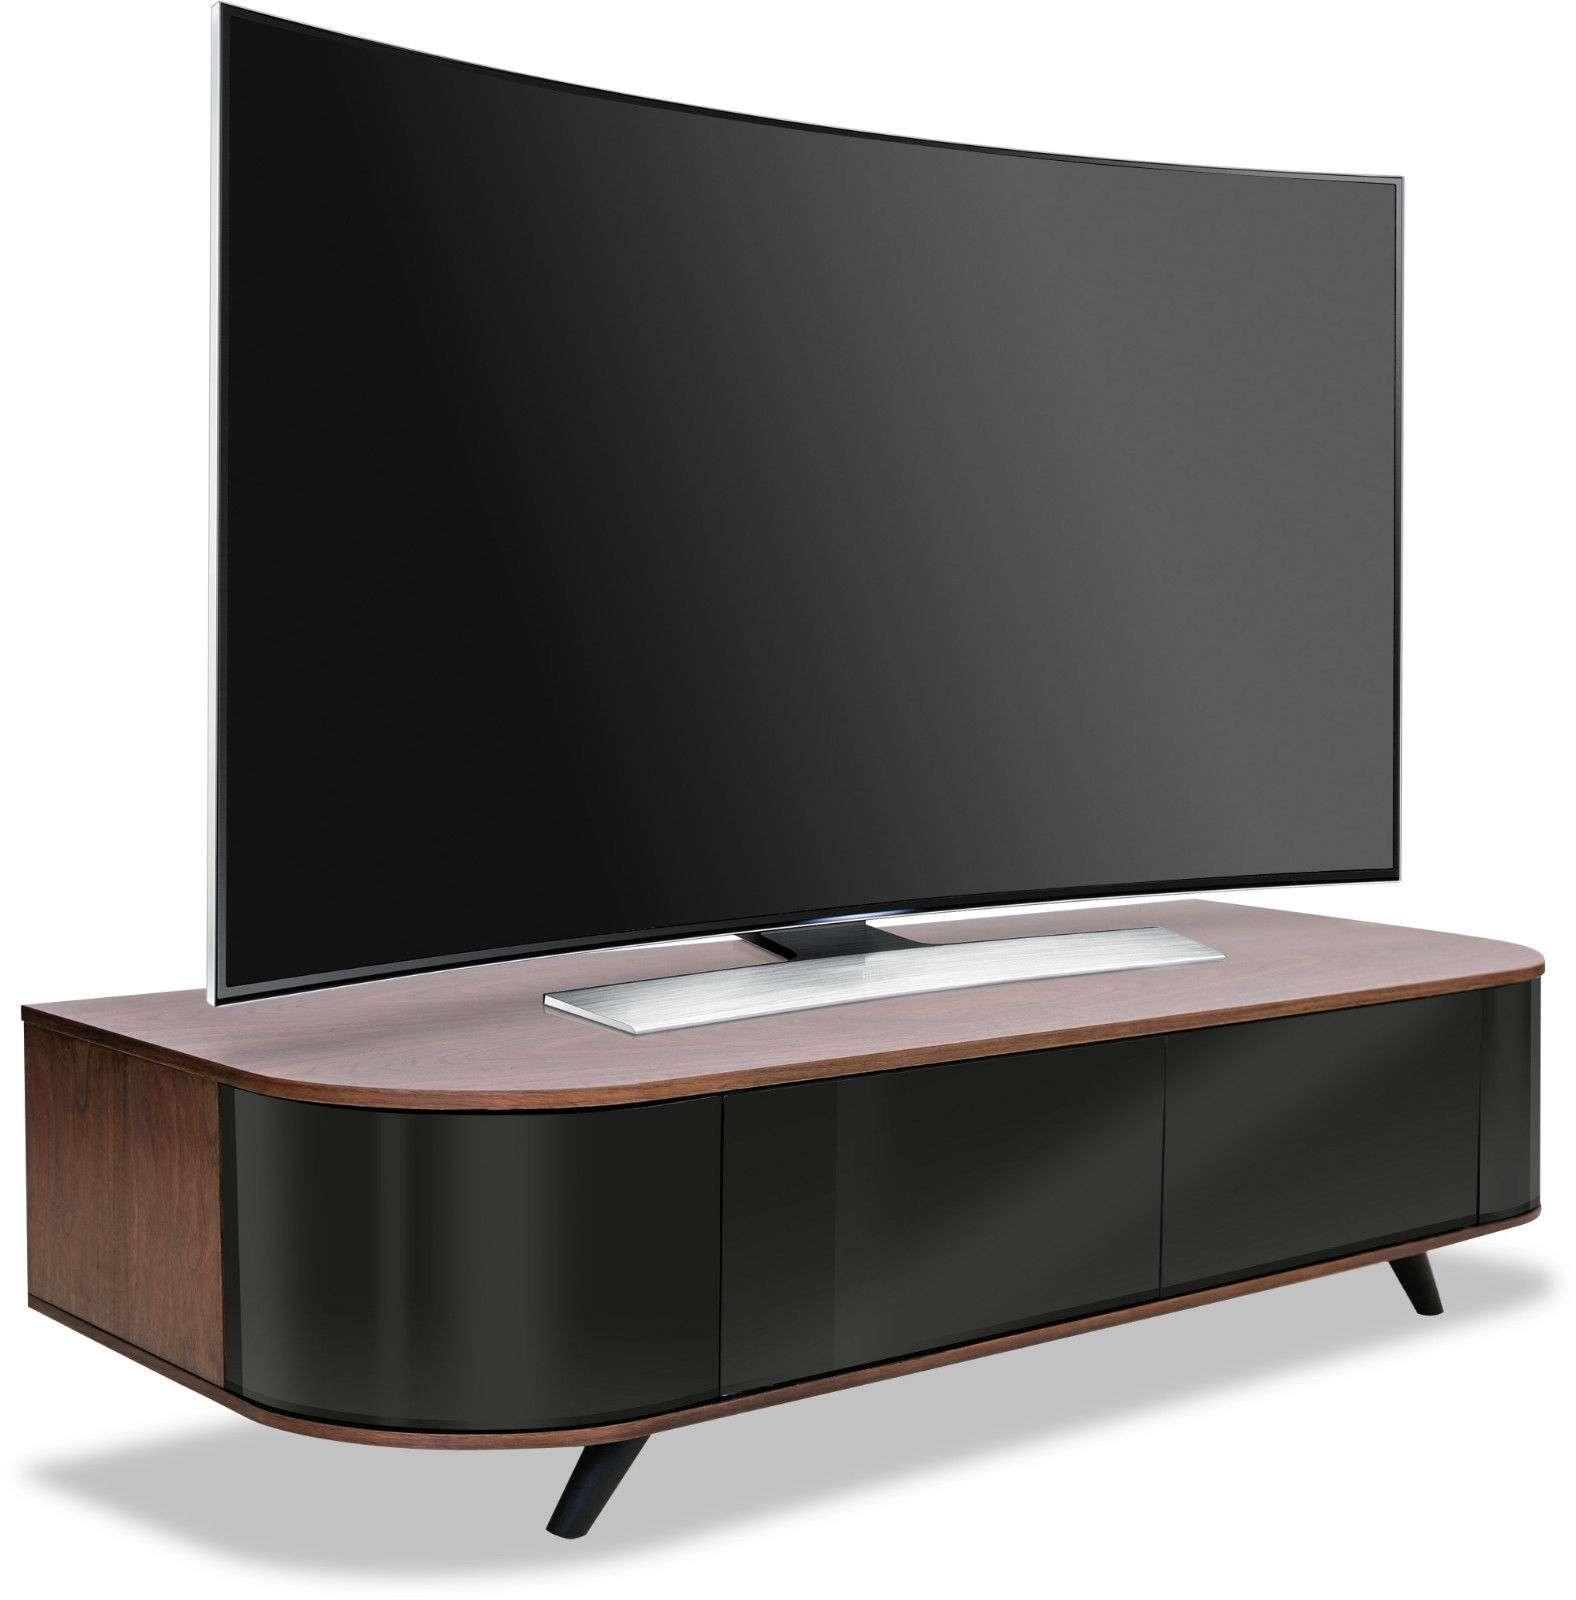 Pristine Inch Tv Home Media Ideas And Tv Stands And Image Tv With Curve Tv Stands (View 10 of 15)